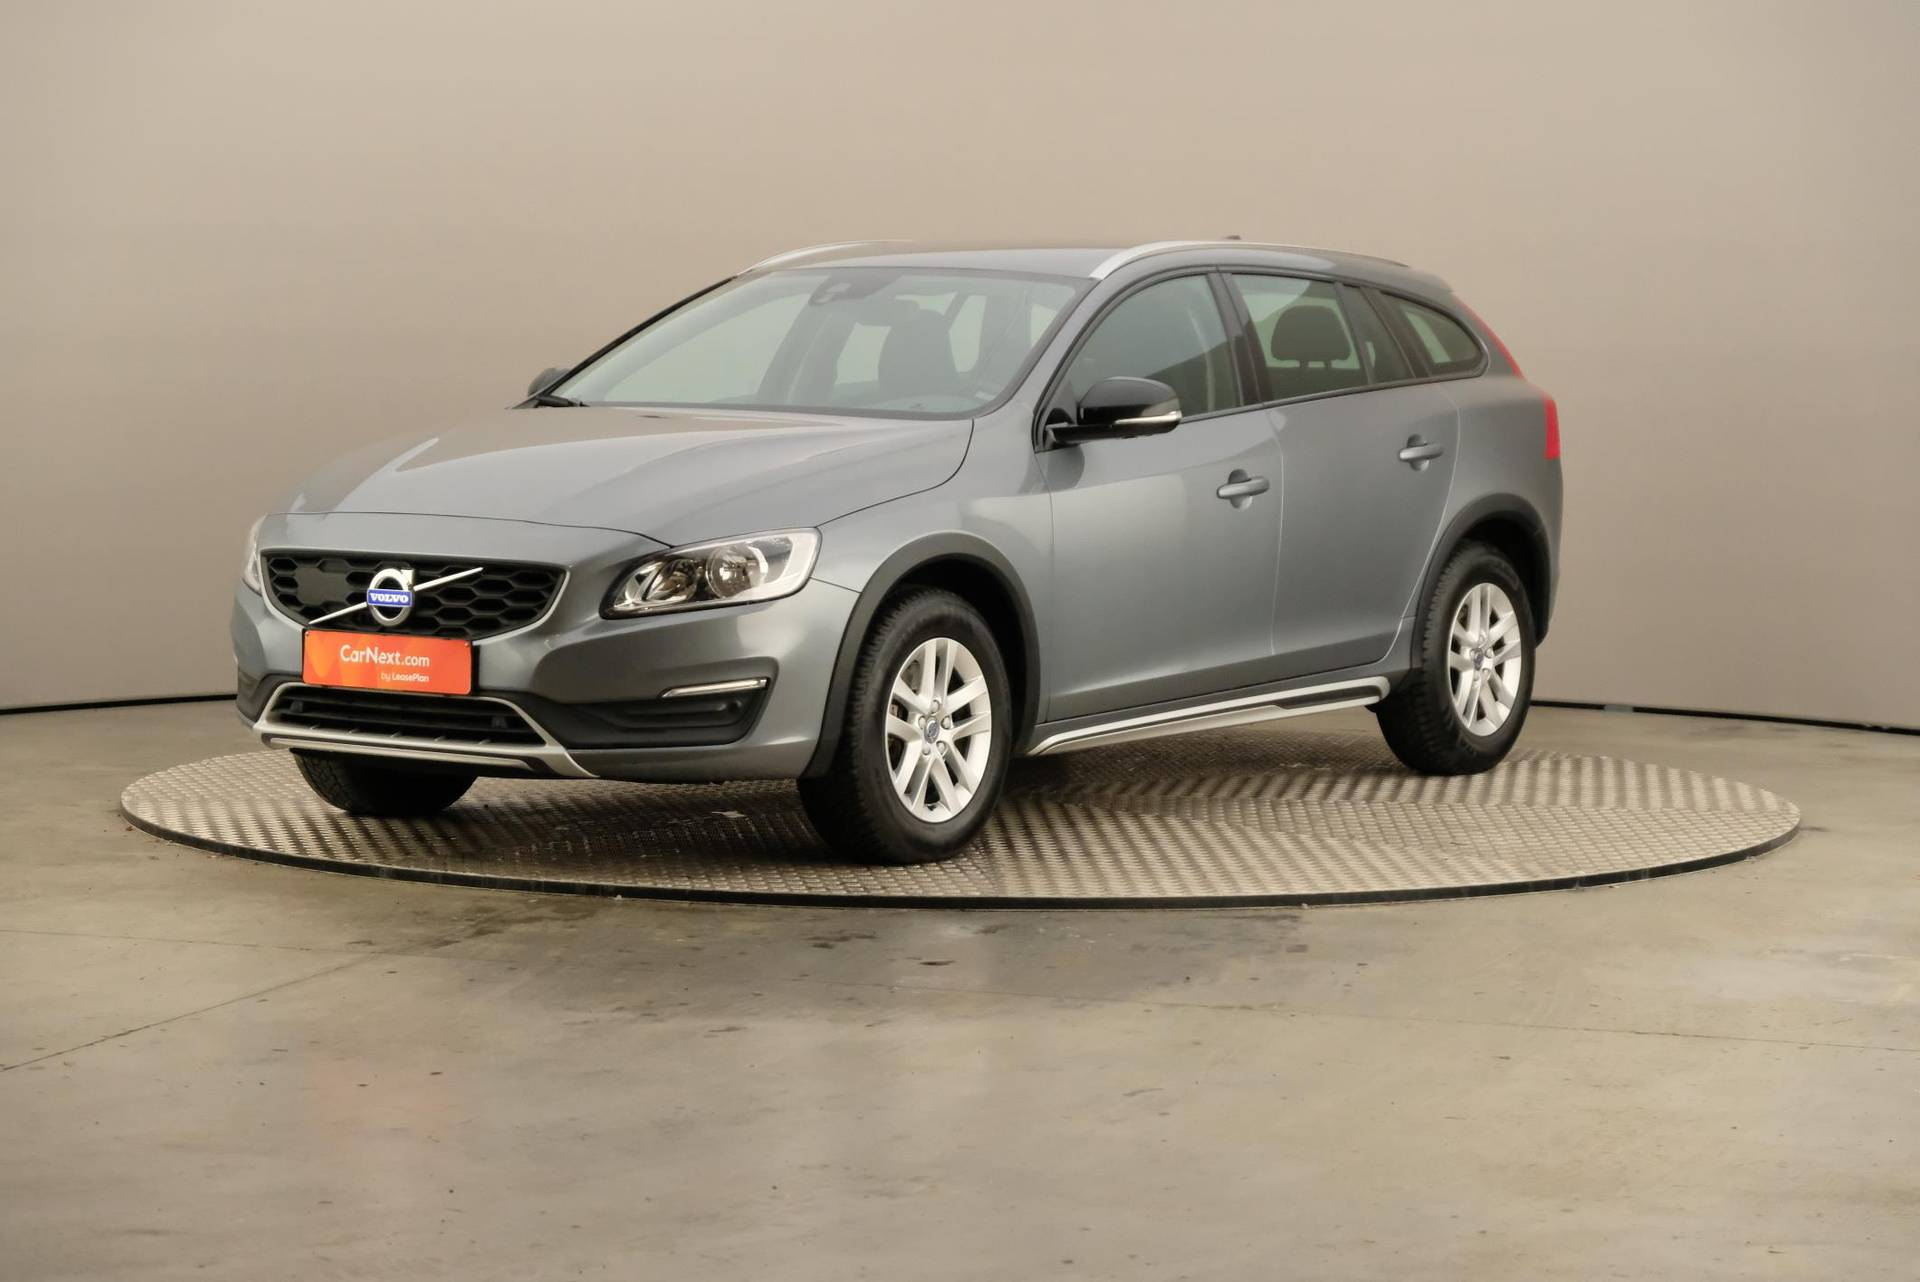 Volvo V60 2.0 D3 Kinetic Geartronic GPS PDC CRUISE CONTROL, 360-image35